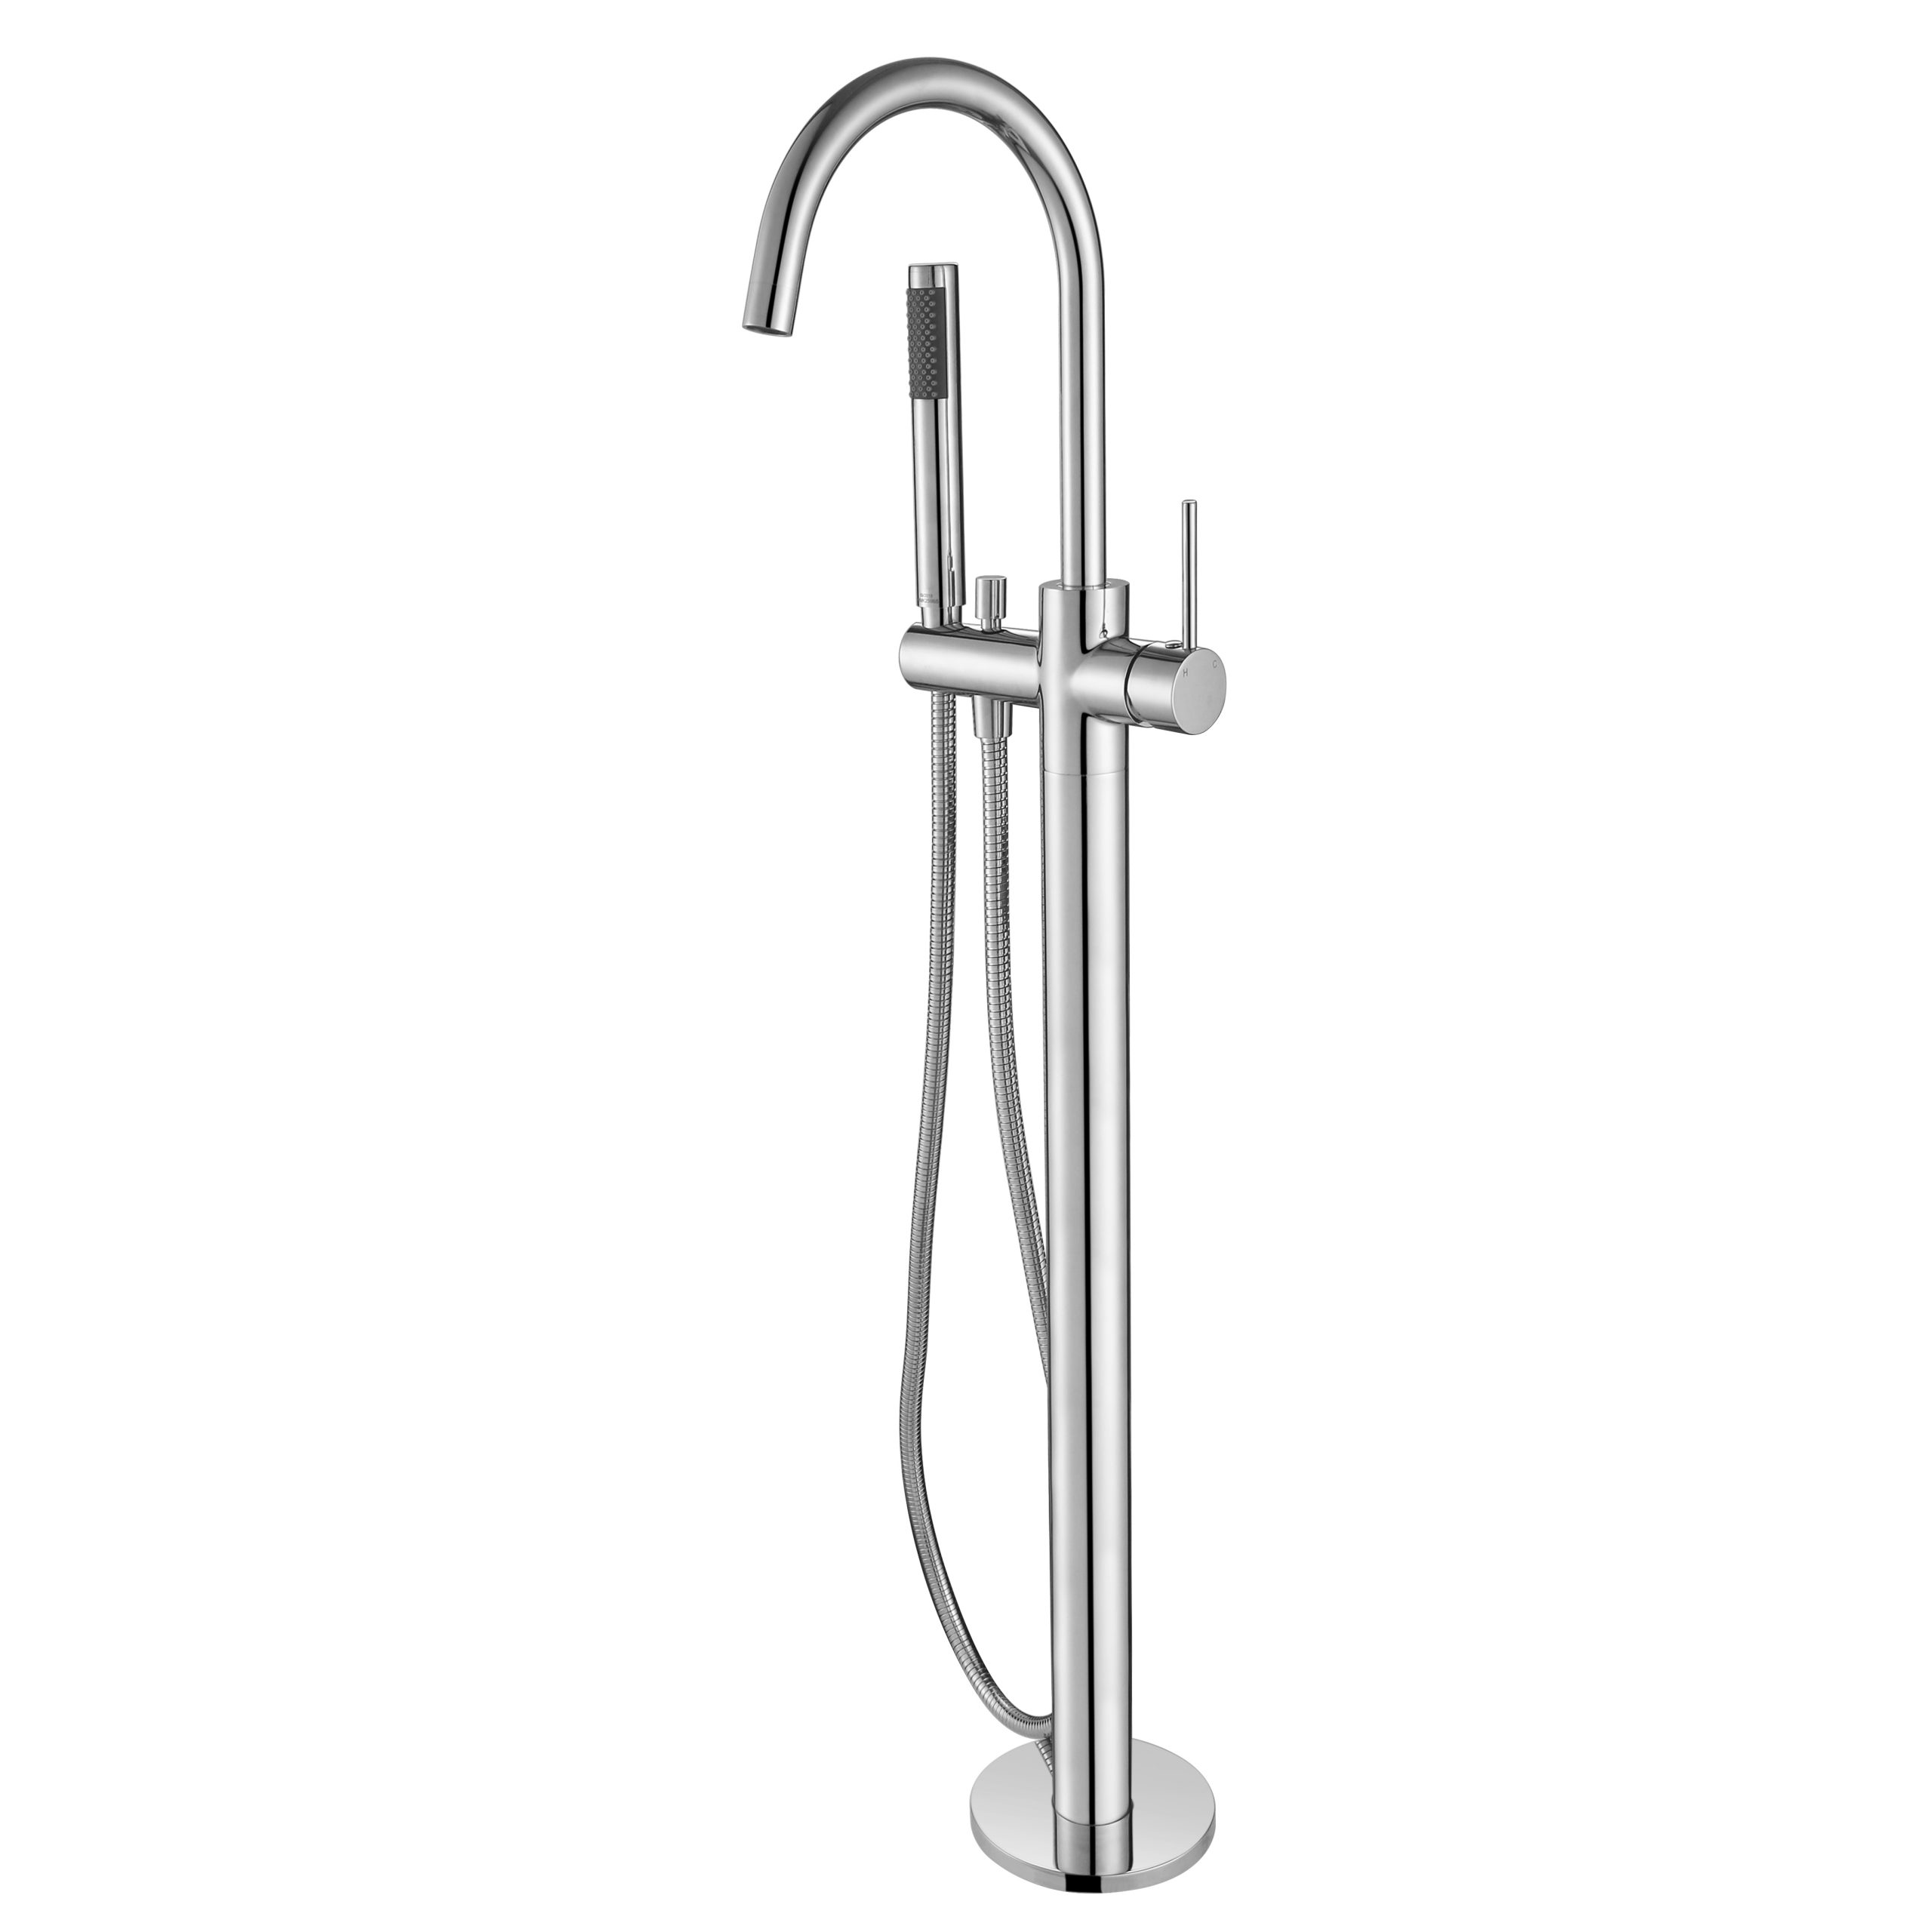 Star Free Standing Bath Mixer With Hand Shower-Chrome